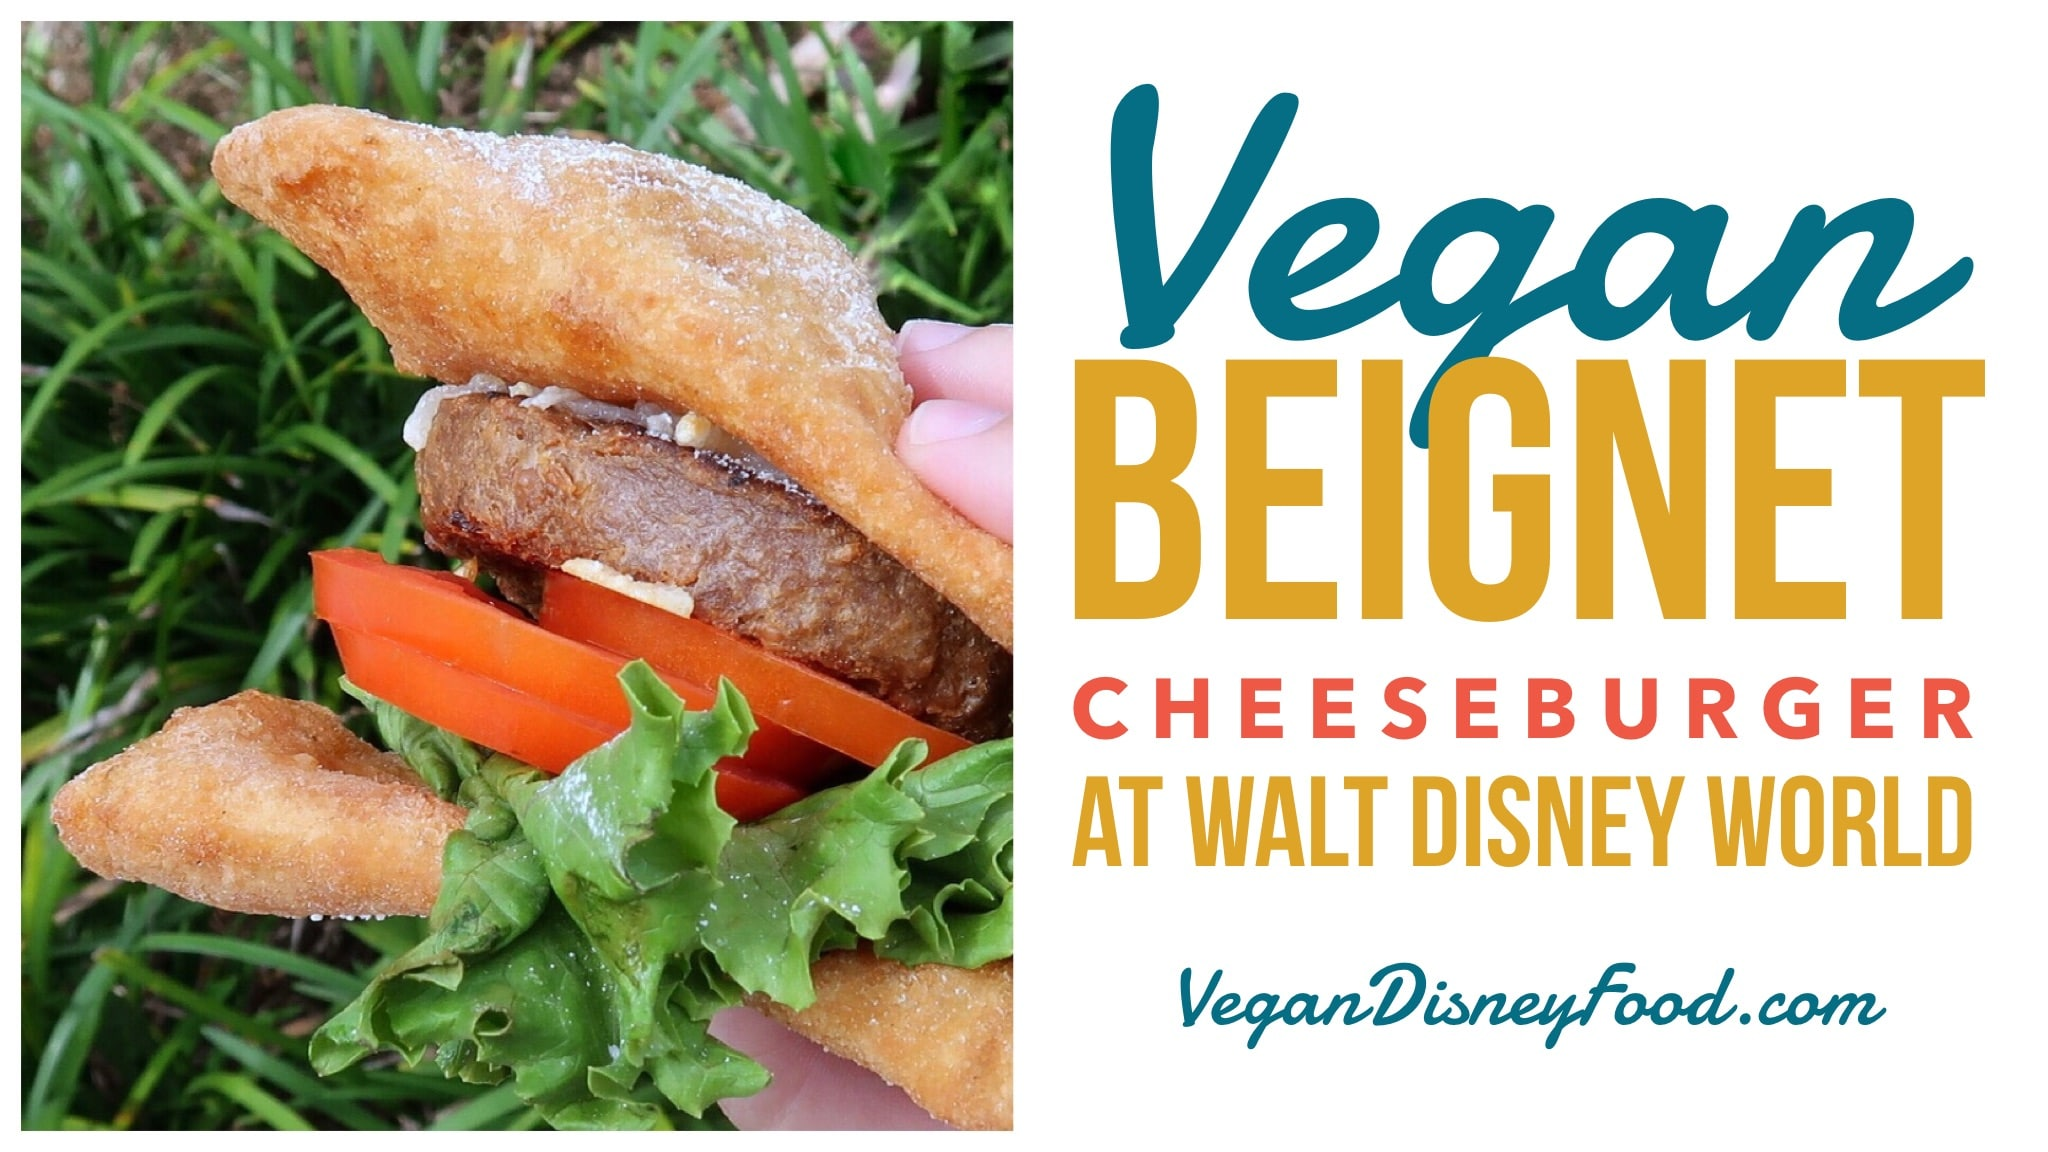 Vegan Beignet Cheeseburger at Port Orleans Resort French Quarter in Walt Disney World